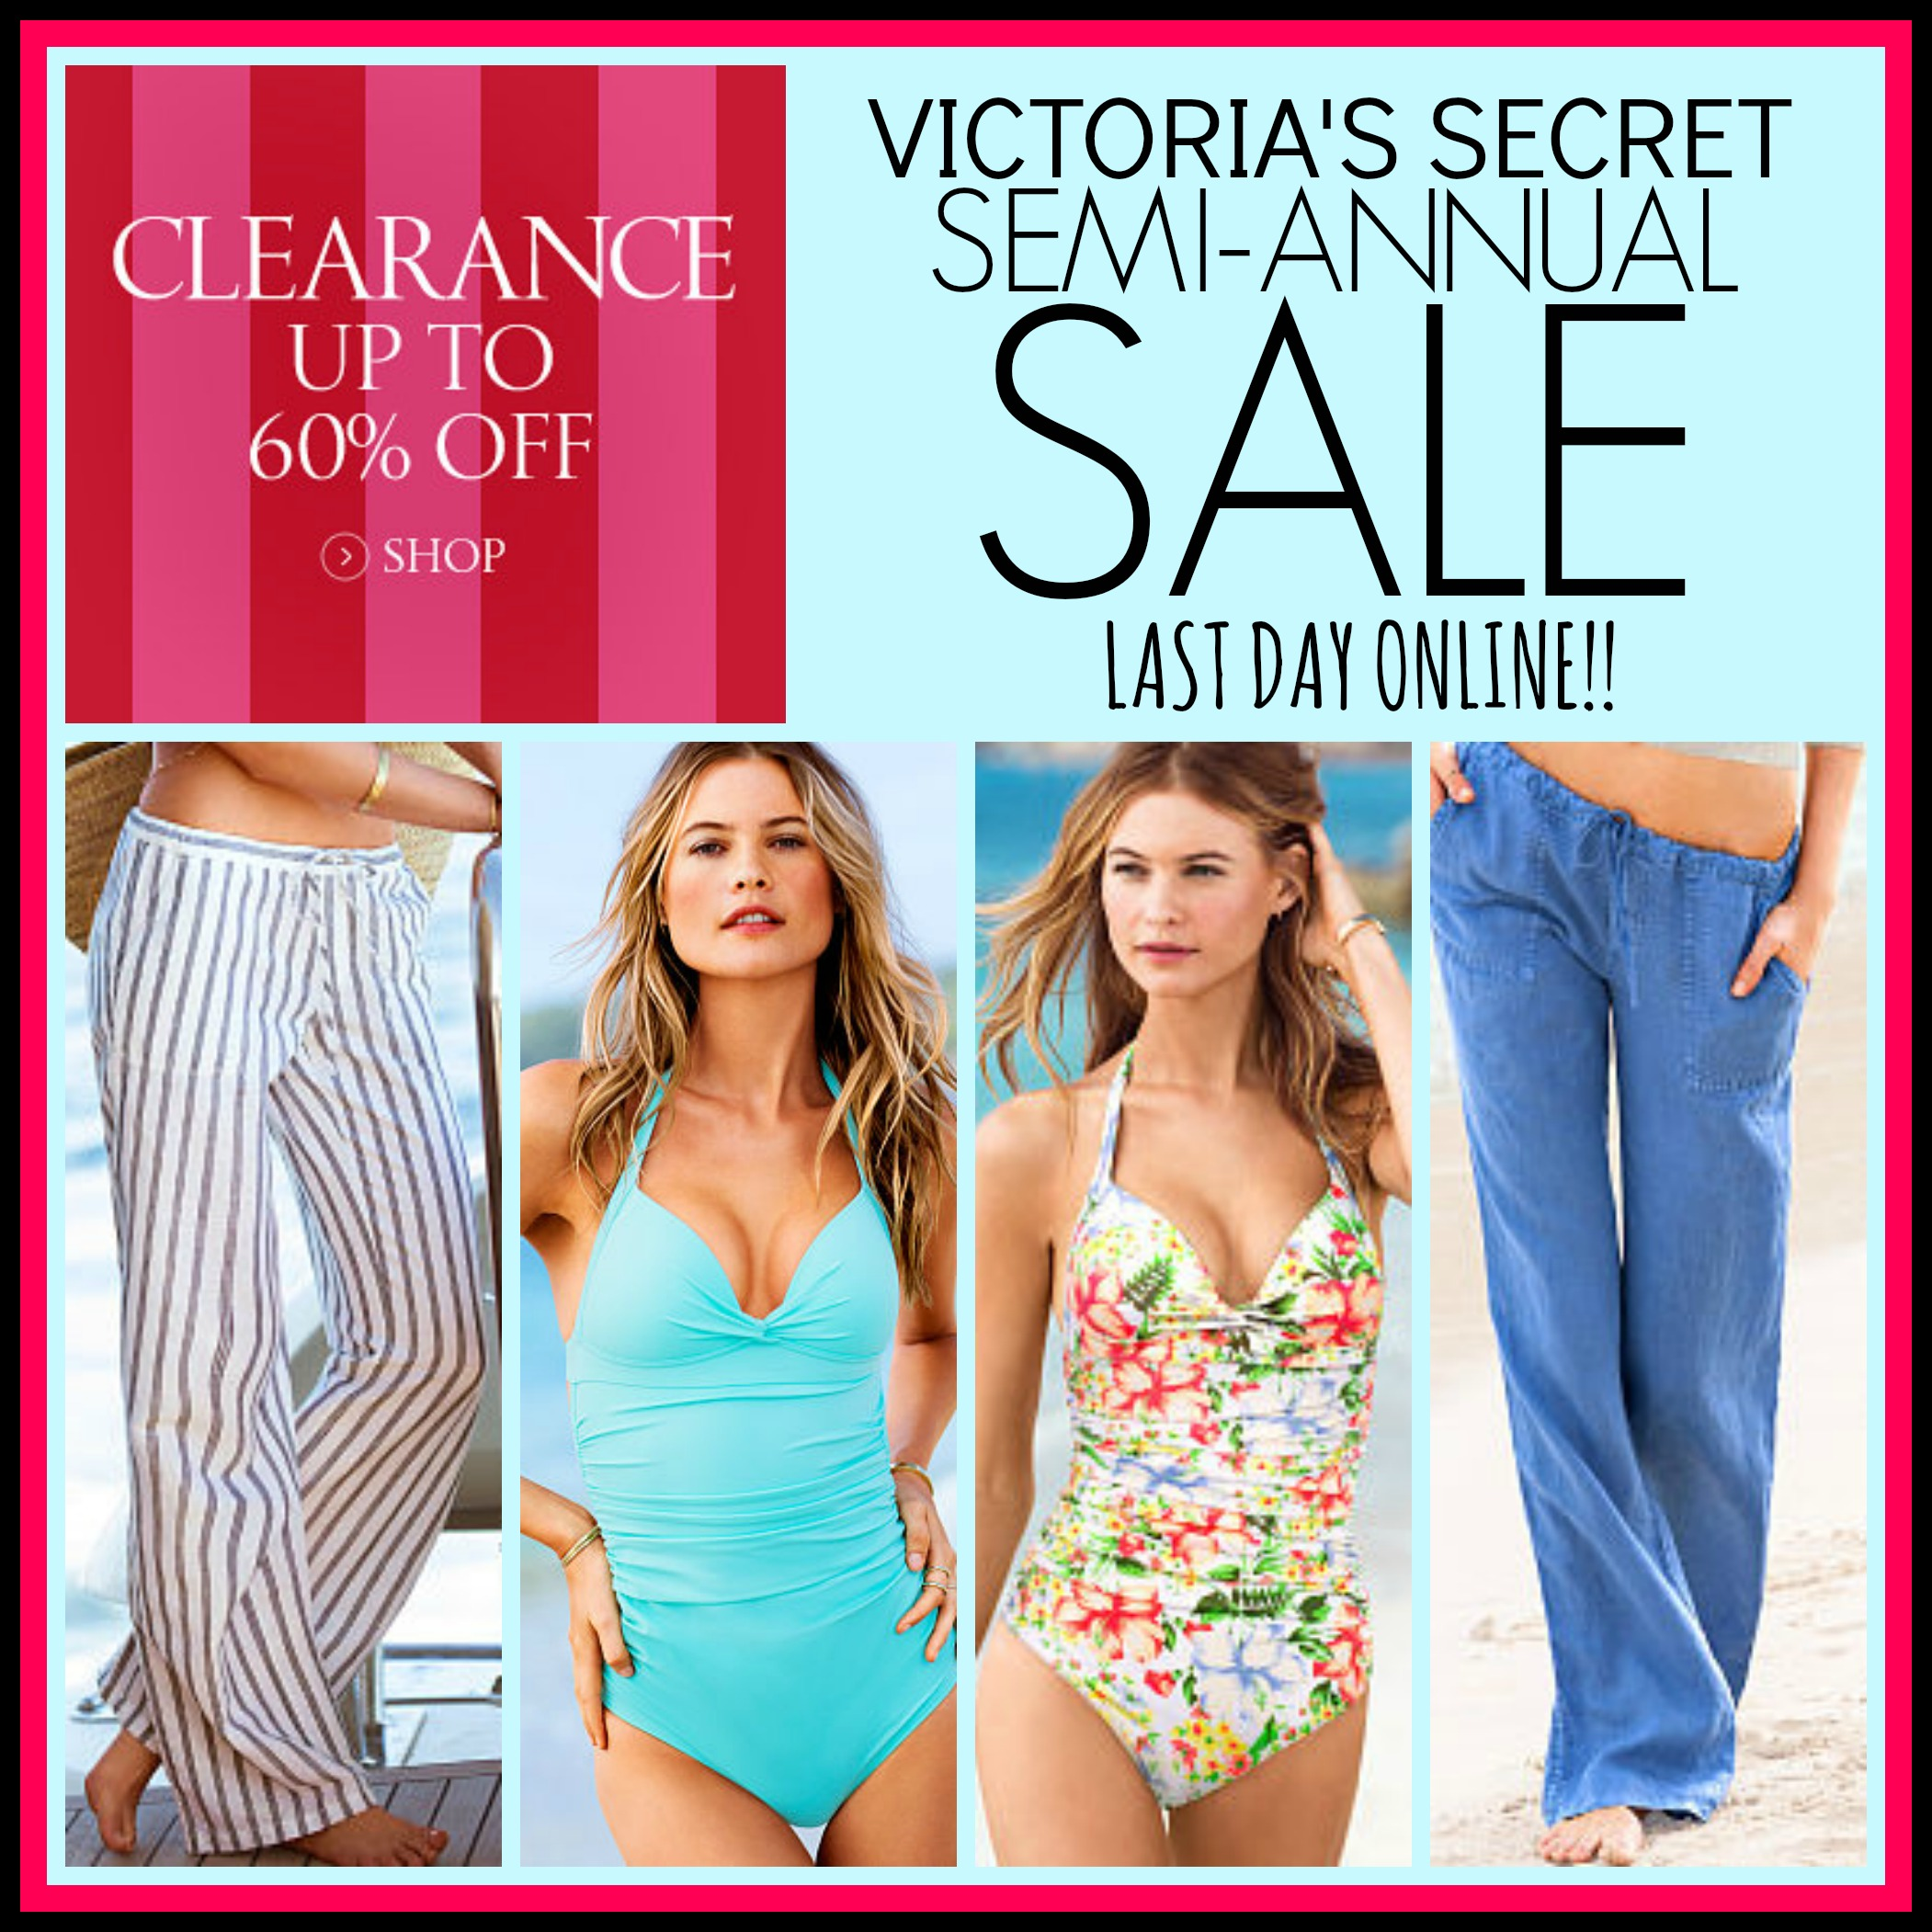 Victoria's secret is the one of most women,s undergarment store, specially for females who love to shop at Victoria Secret,this year in Victoria Secret semi-annual sale started from 10 June and another would be in month of January.